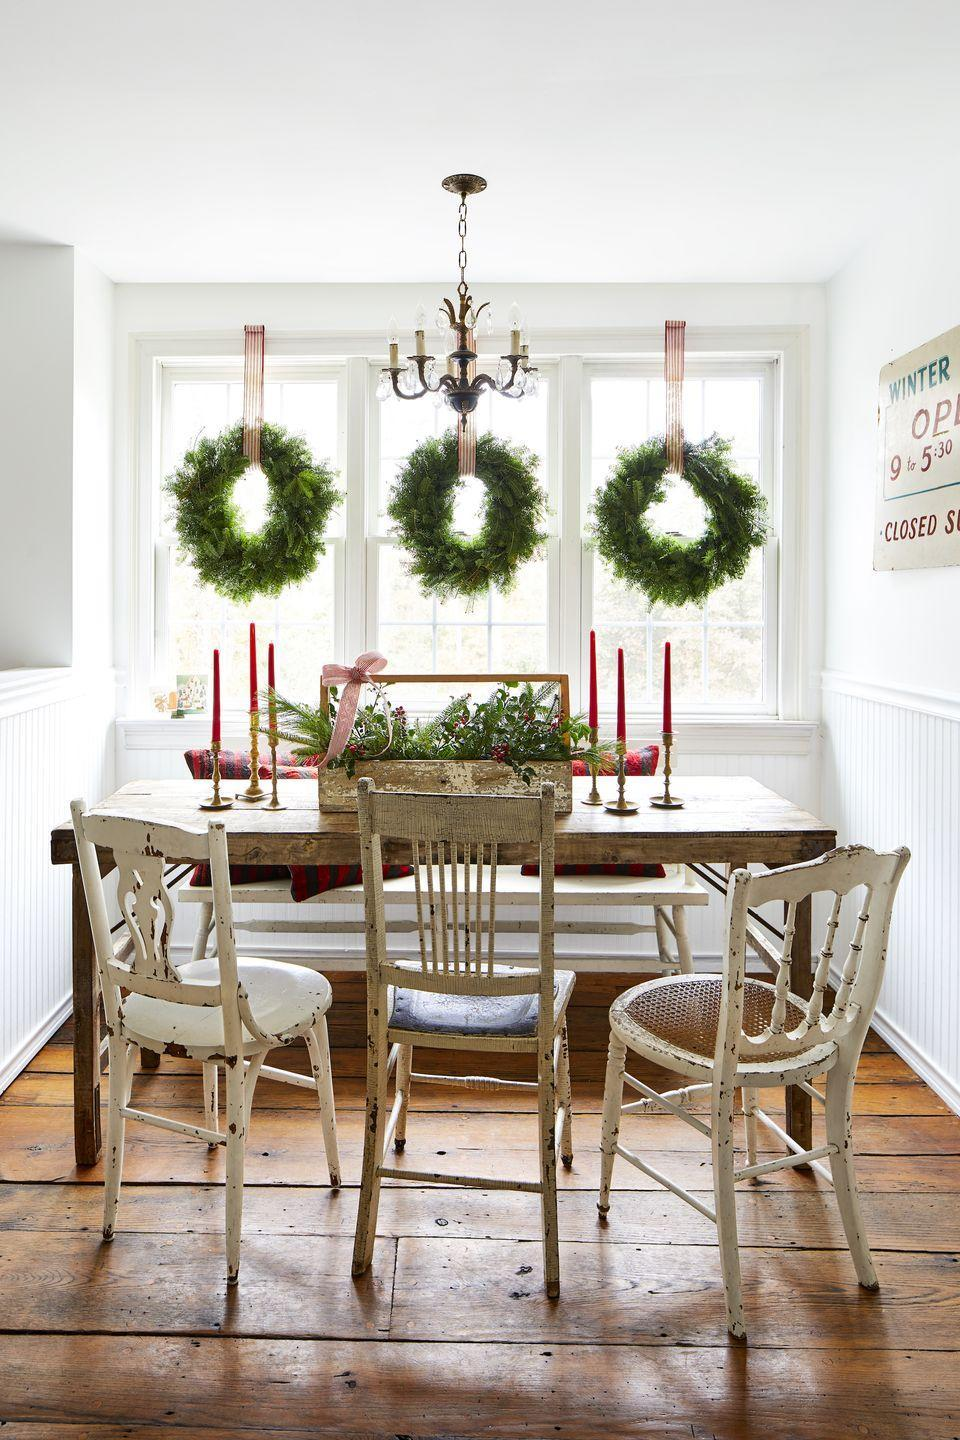 """<p>This classic look never goes out of style. Simply hang wreaths with wide, red-and-white ticking striped ribbon. Conceal a small nail or hook out of sight on the top of your window frame. <br></p><p><a class=""""link rapid-noclick-resp"""" href=""""https://www.amazon.com/Yards-White-Tri-Striped-Wired-Ribbon/dp/B07BW6QL75/ref=sr_1_4?dchild=1&keywords=red+and+white+ticking+stripe+ribbon&qid=1604018543&sr=8-4&tag=syn-yahoo-20&ascsubtag=%5Bartid%7C10050.g.23343056%5Bsrc%7Cyahoo-us"""" rel=""""nofollow noopener"""" target=""""_blank"""" data-ylk=""""slk:SHOP RIBBON"""">SHOP RIBBON</a></p>"""